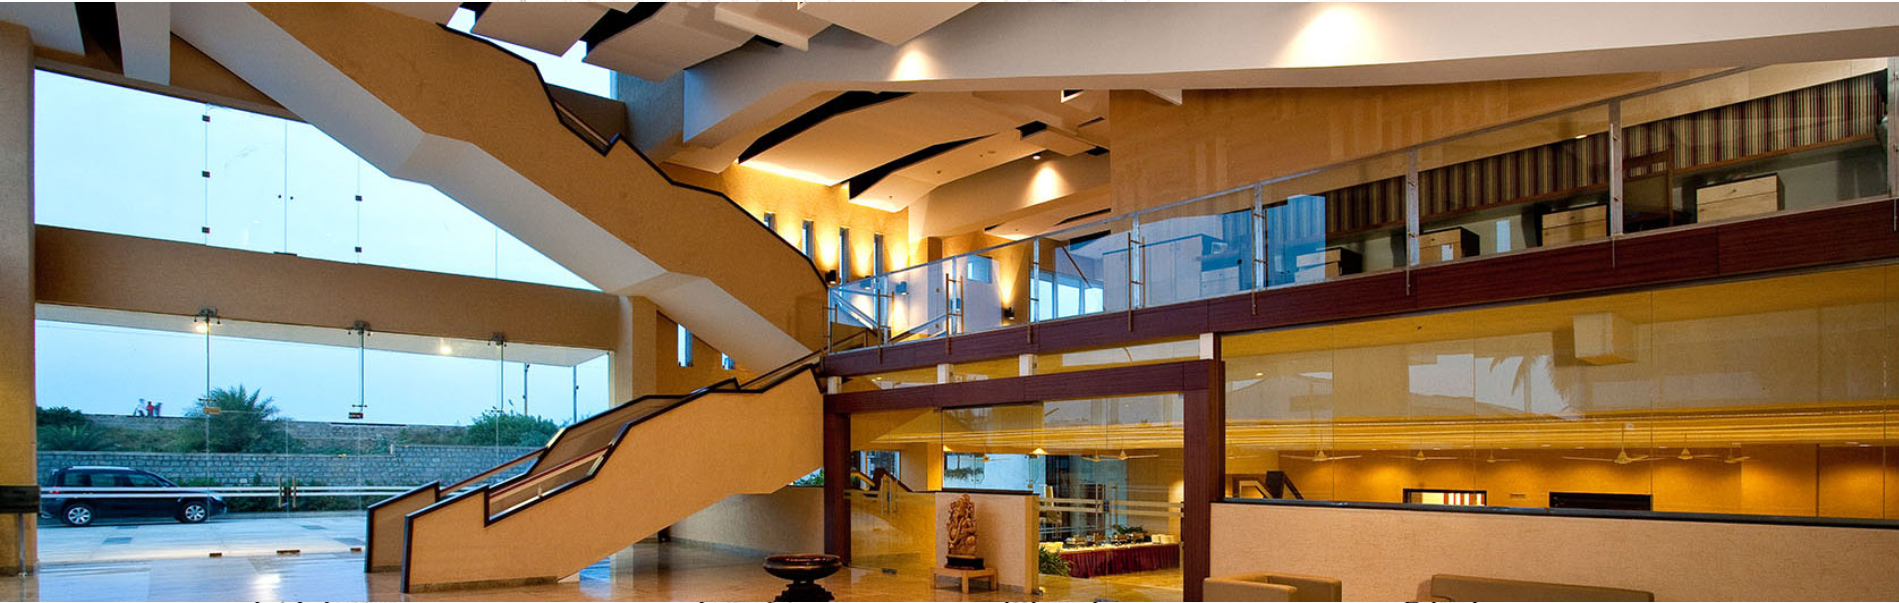 Top 50 Architecture Firms in Bangalore - Praxis Architects